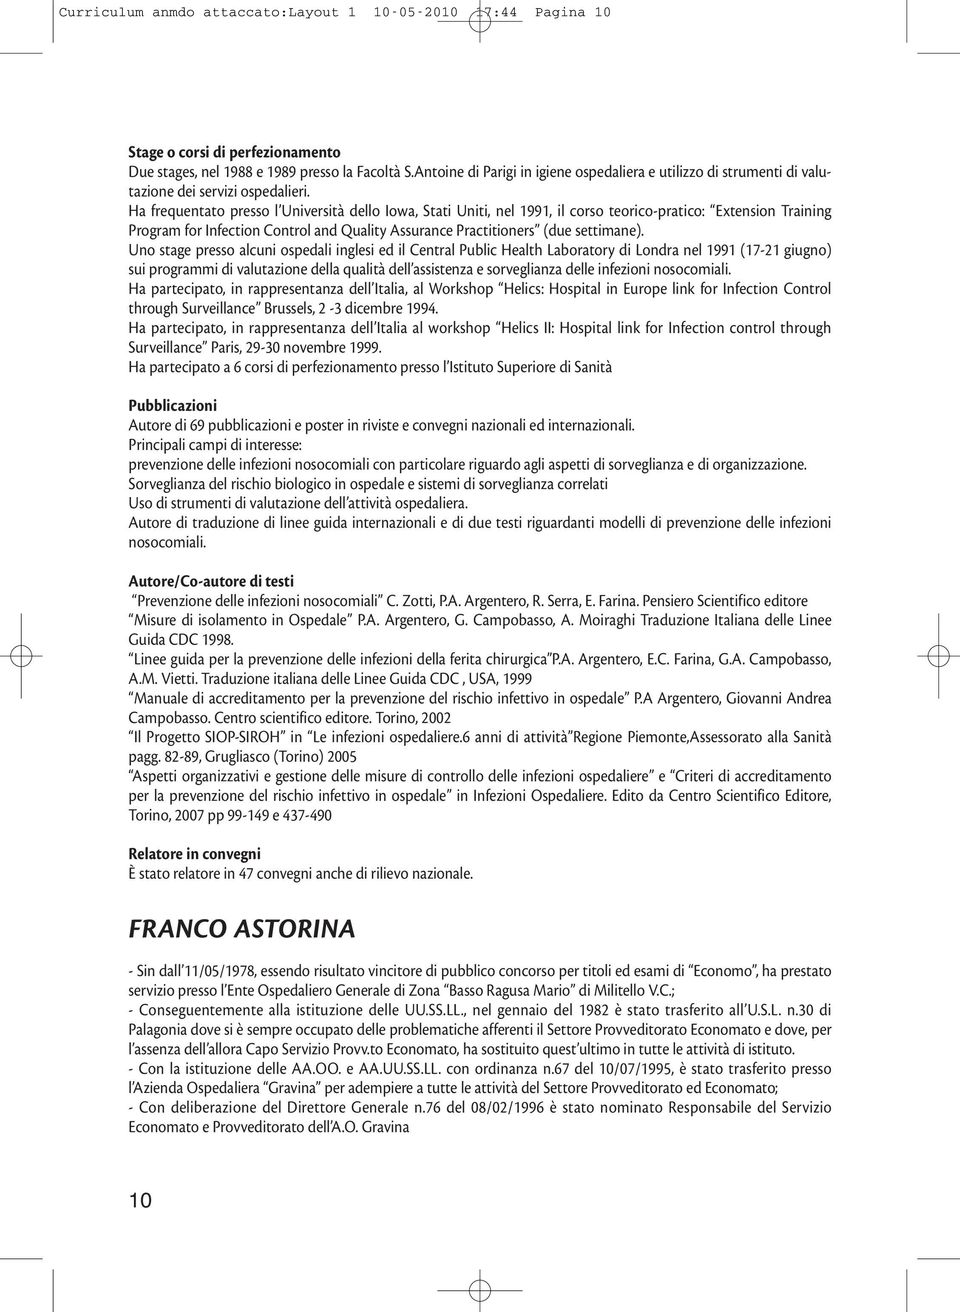 Ha frequentato presso l Università dello Iowa, Stati Uniti, nel 1991, il corso teorico-pratico: Extension Training Program for Infection Control and Quality Assurance Practitioners (due settimane).